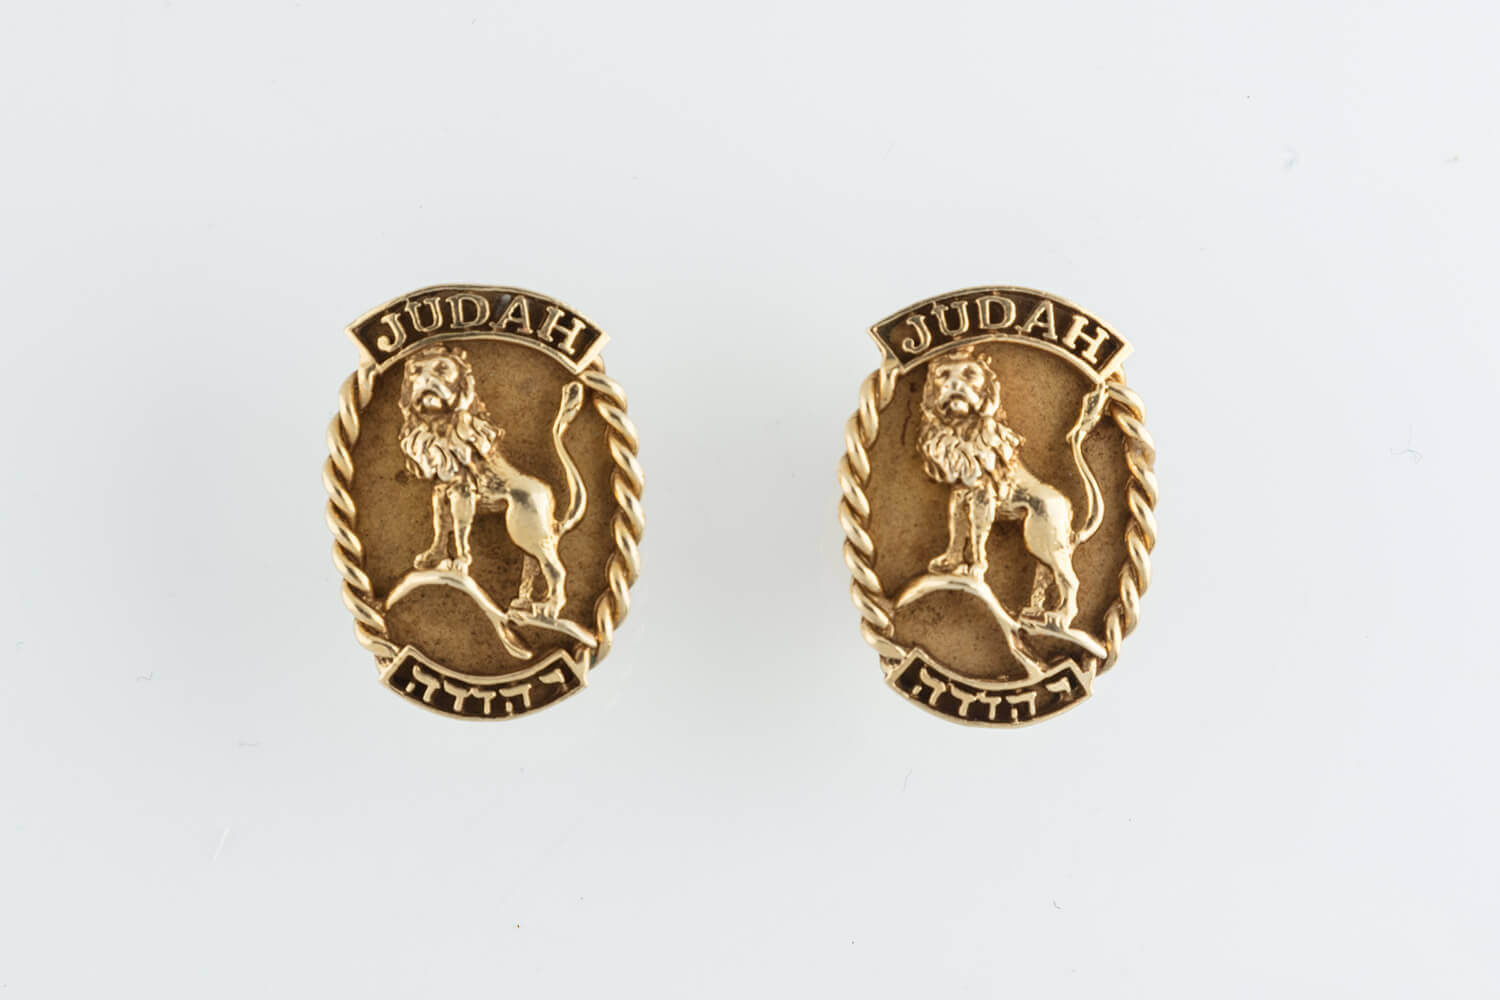 018. A PAIR OF 14K GOLD CUFFLINKS